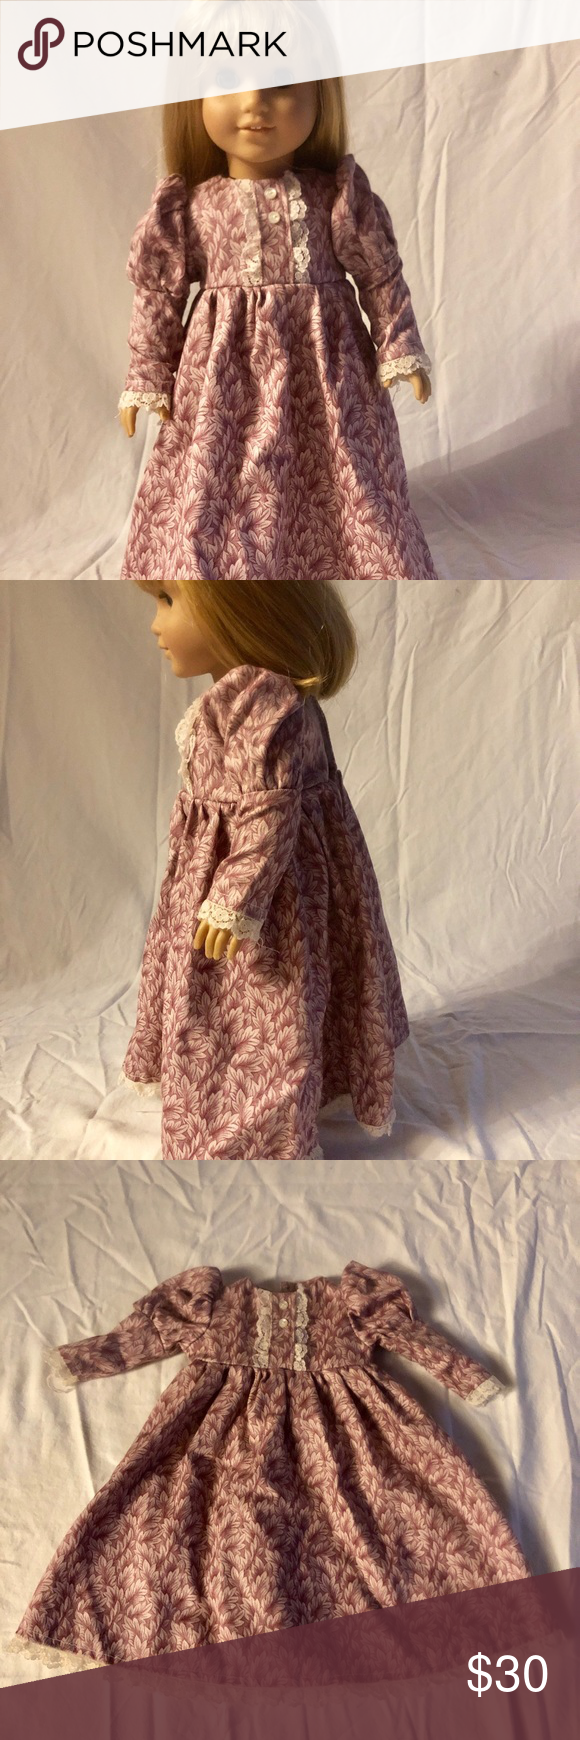 "American Girl Doll size colonial dress Colonial style purple dress sizes for 18"" American Girl Dolls. Doll not included. Comment for questions and offers:) American Girl Other #colonialdolldresses American Girl Doll size colonial dress Colonial style purple dress sizes for 18"" American Girl Dolls. Doll not included. Comment for questions and offers:) American Girl Other #colonialdolldresses American Girl Doll size colonial dress Colonial style purple dress sizes for 18"" American Girl Dolls #colonialdolldresses"